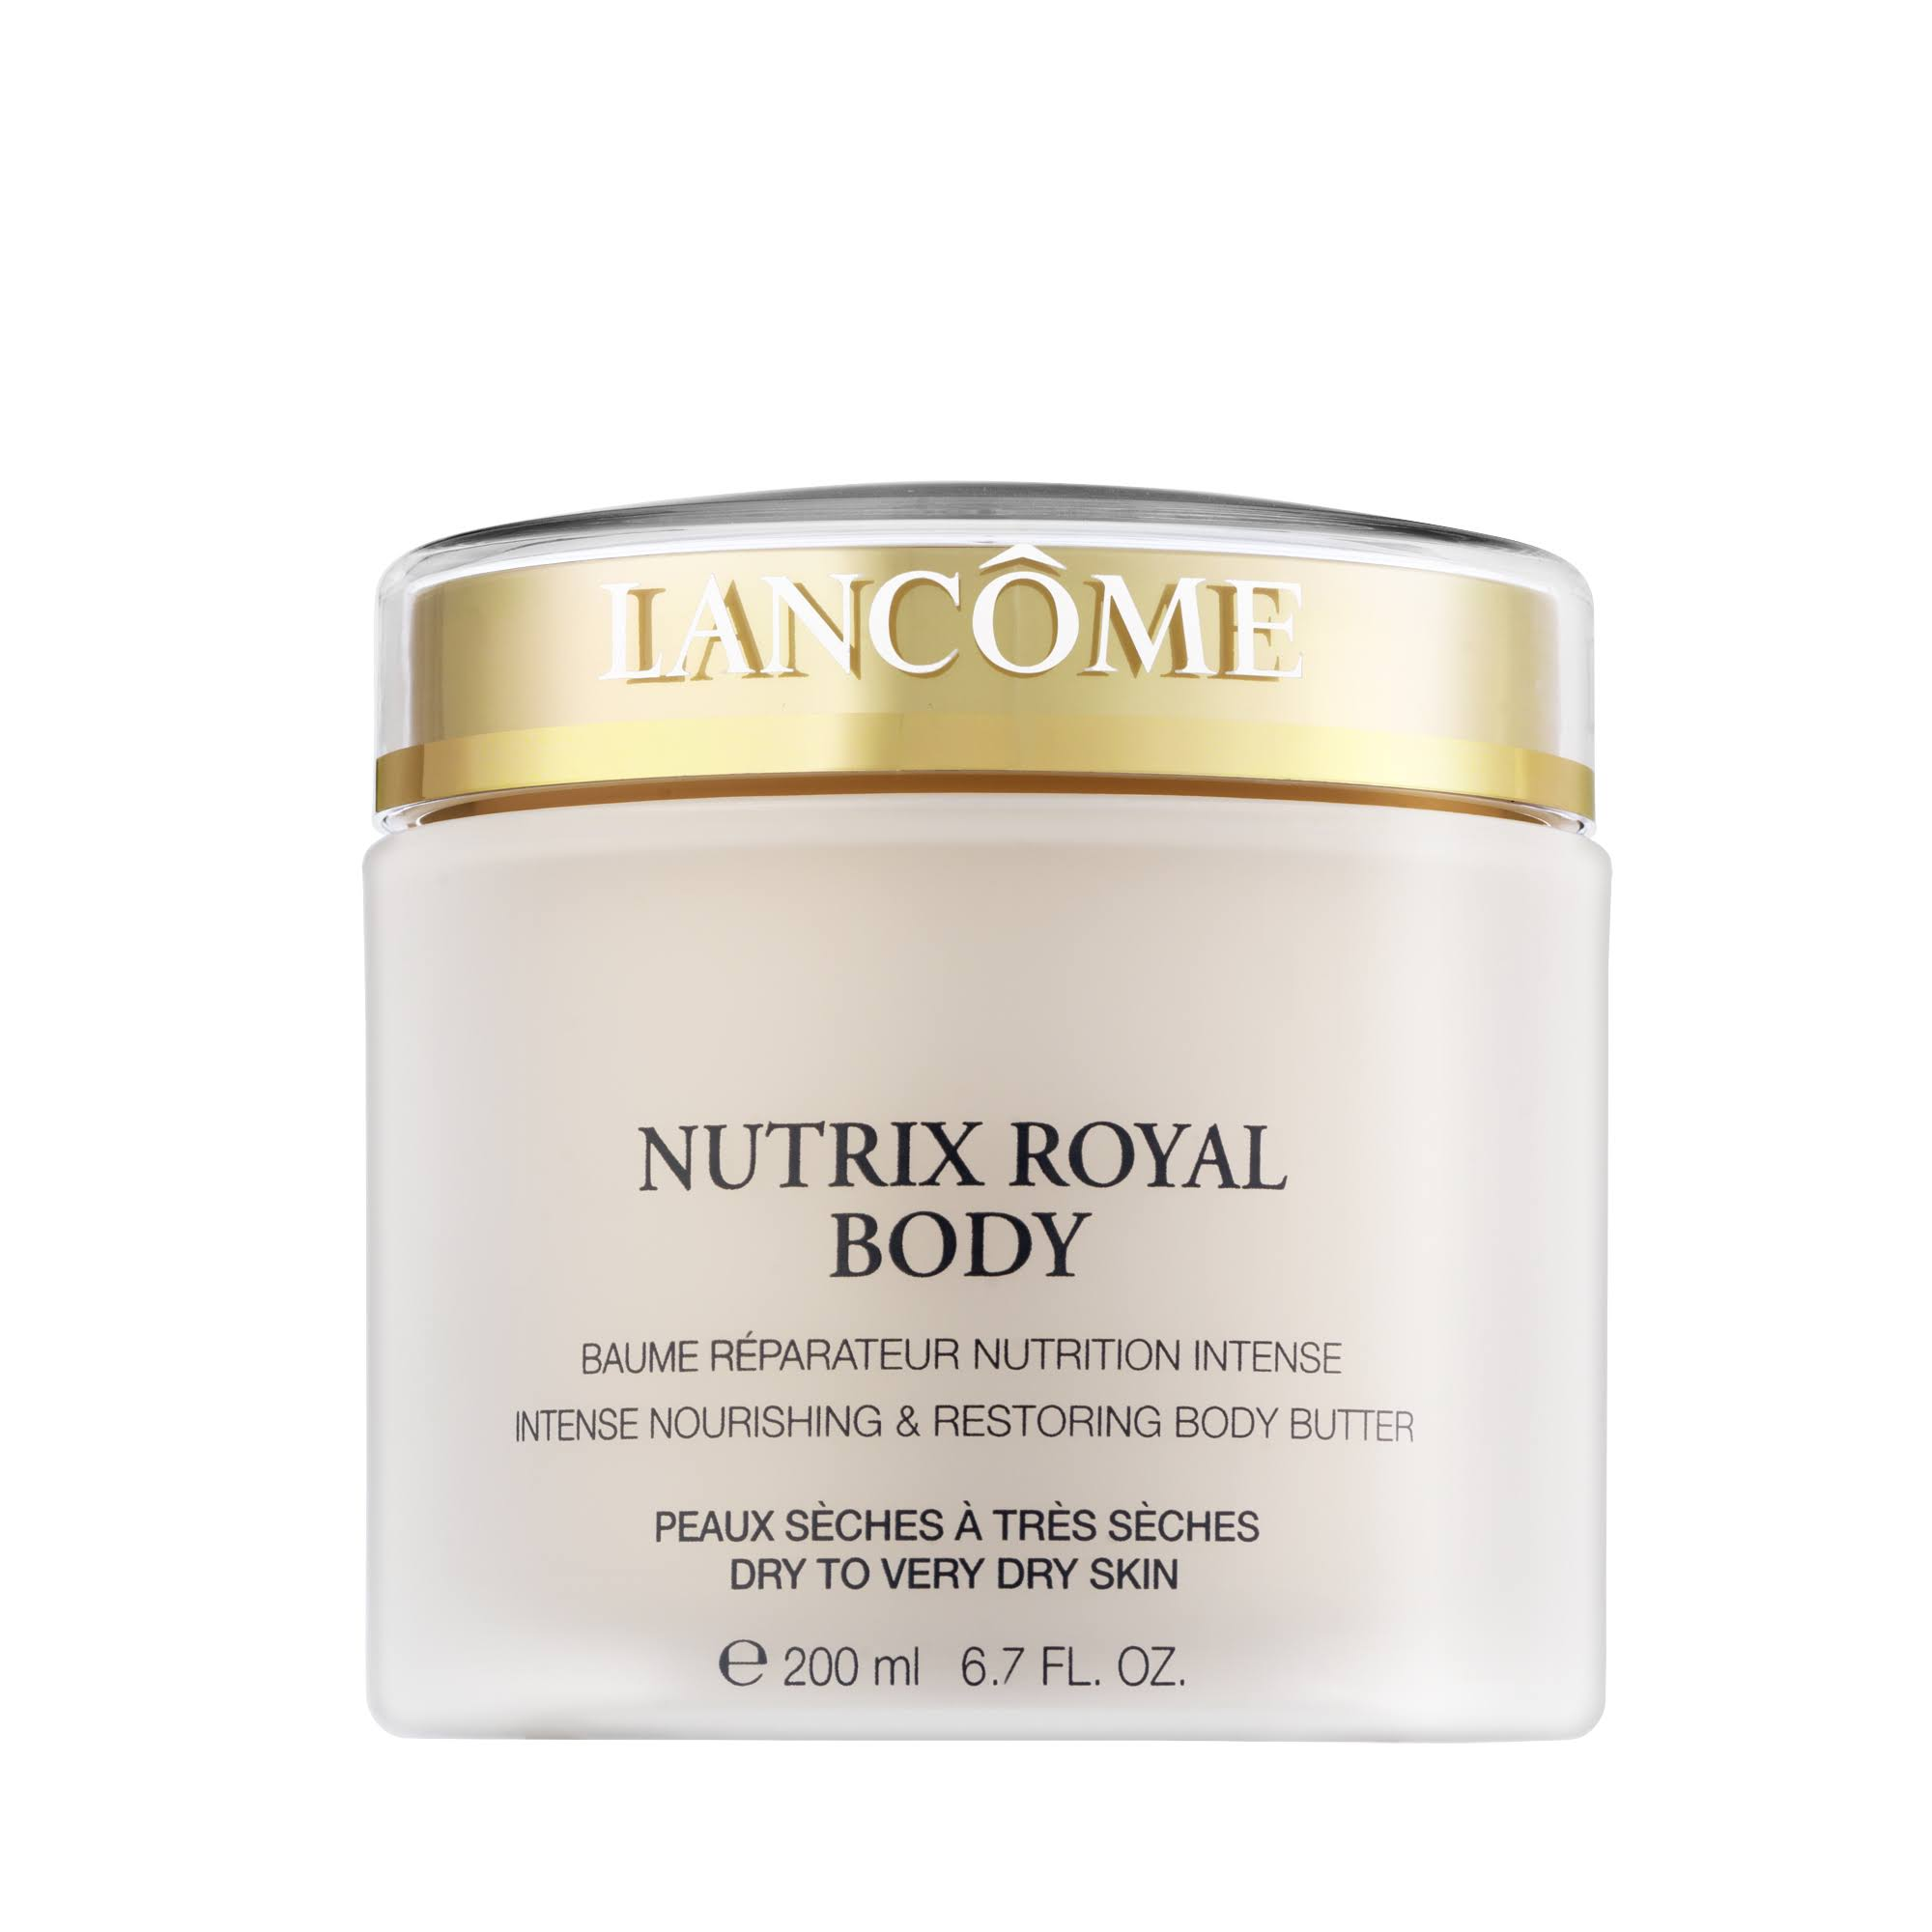 Lancome Nutrix Royal Body Butter - 200ml